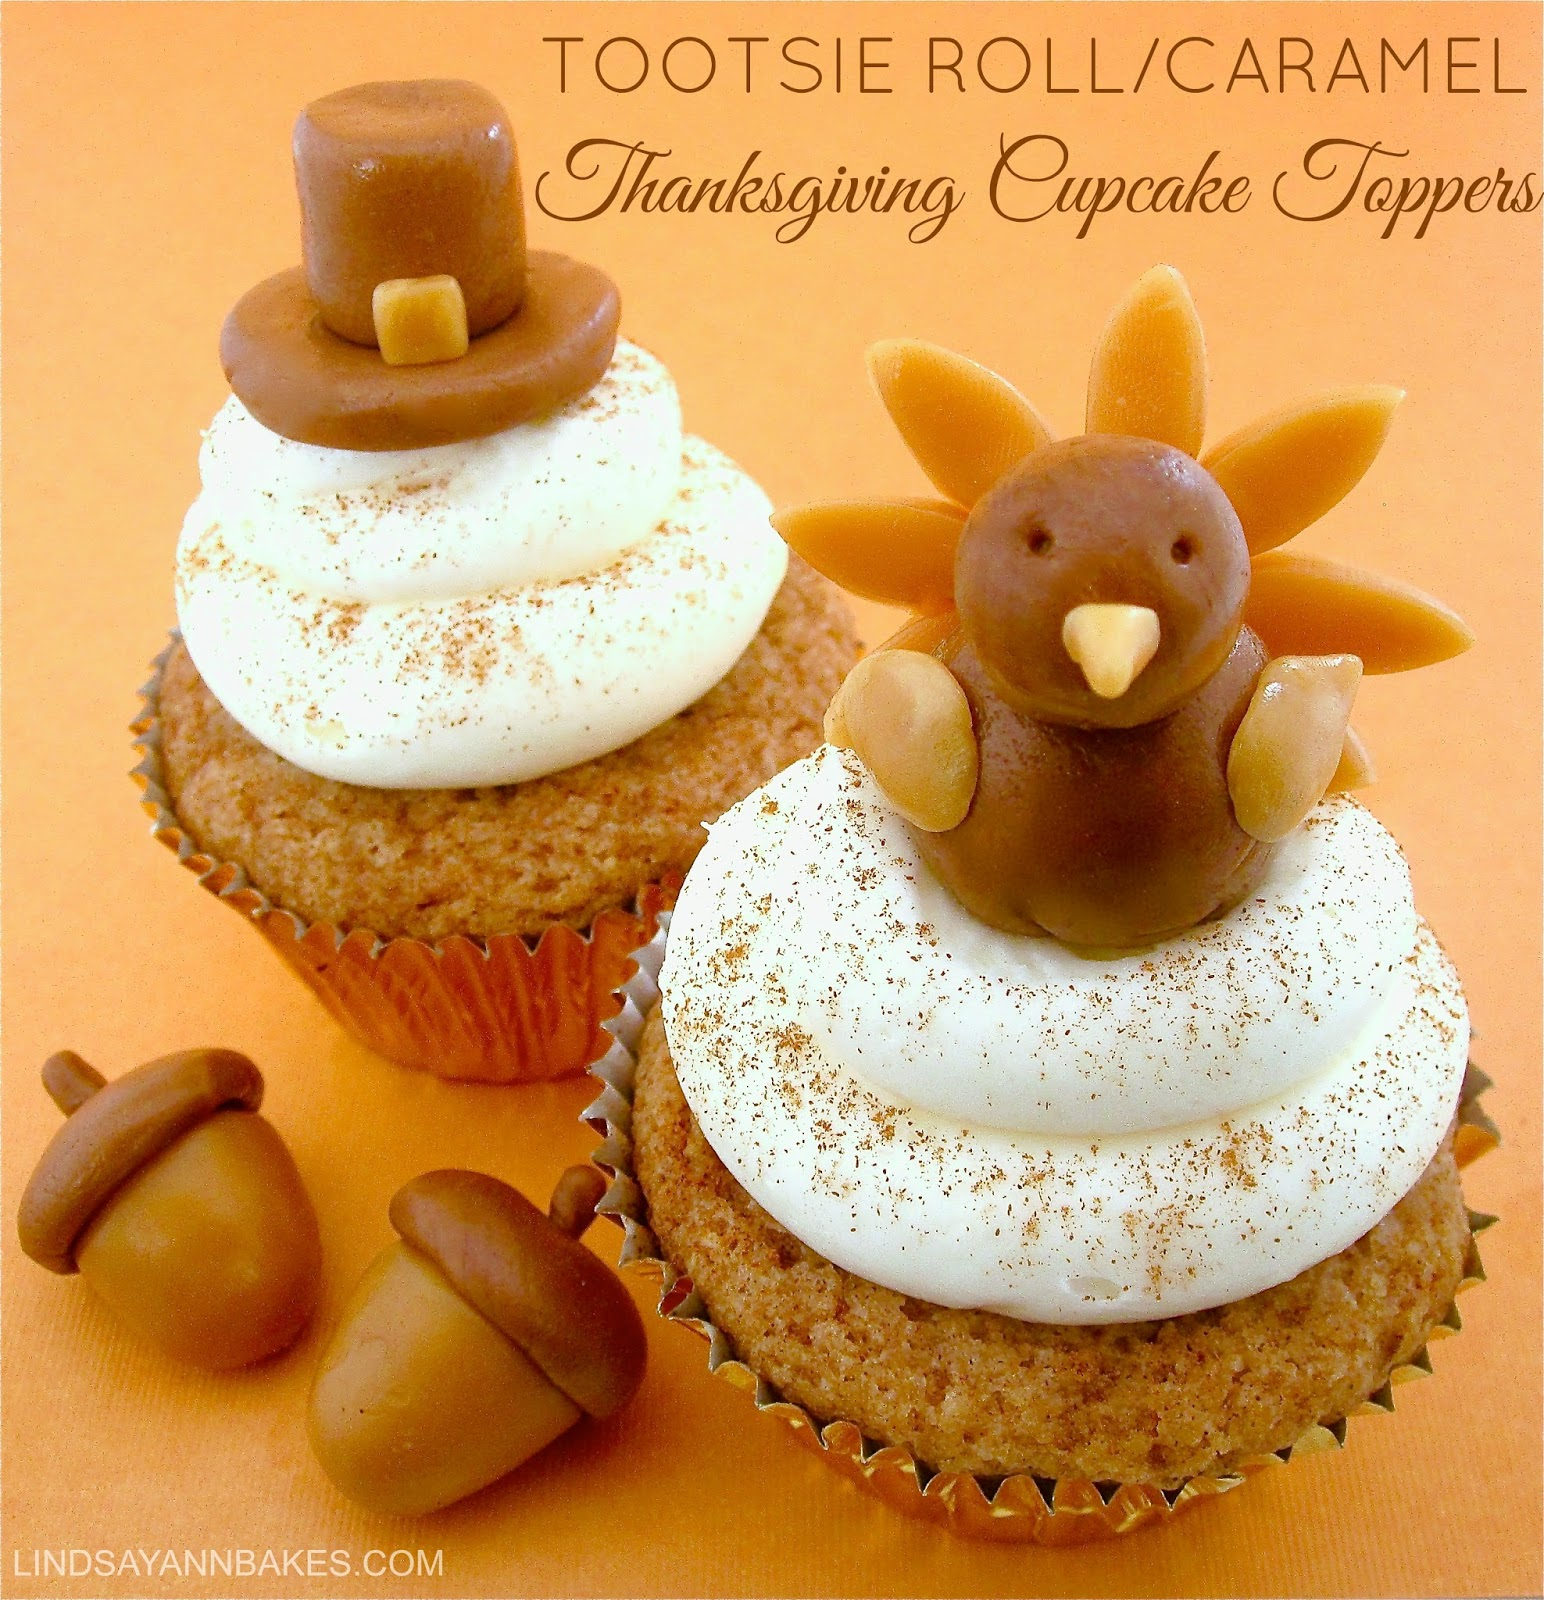 Tootsie Roll/Caramel Thanksgiving Cupcake Toppers